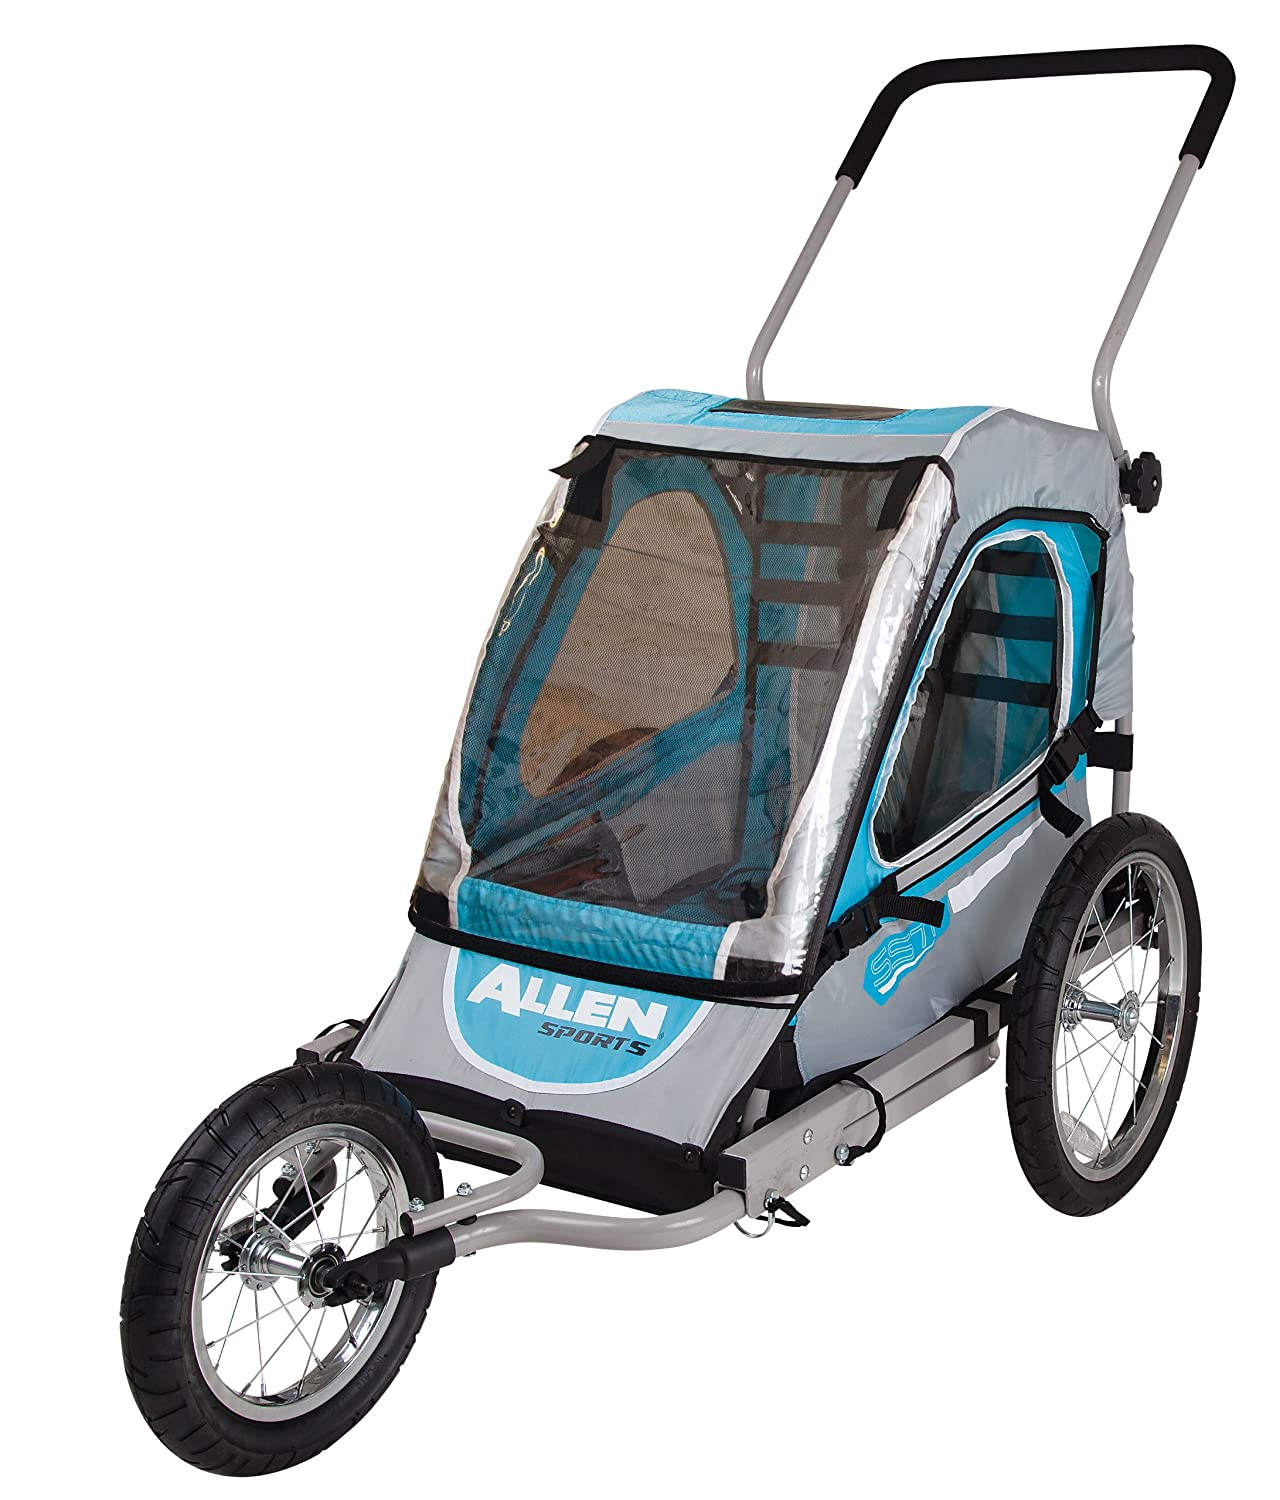 Amazon.com : Allen Sports Child Jogger Trailer : Child Carrier ...